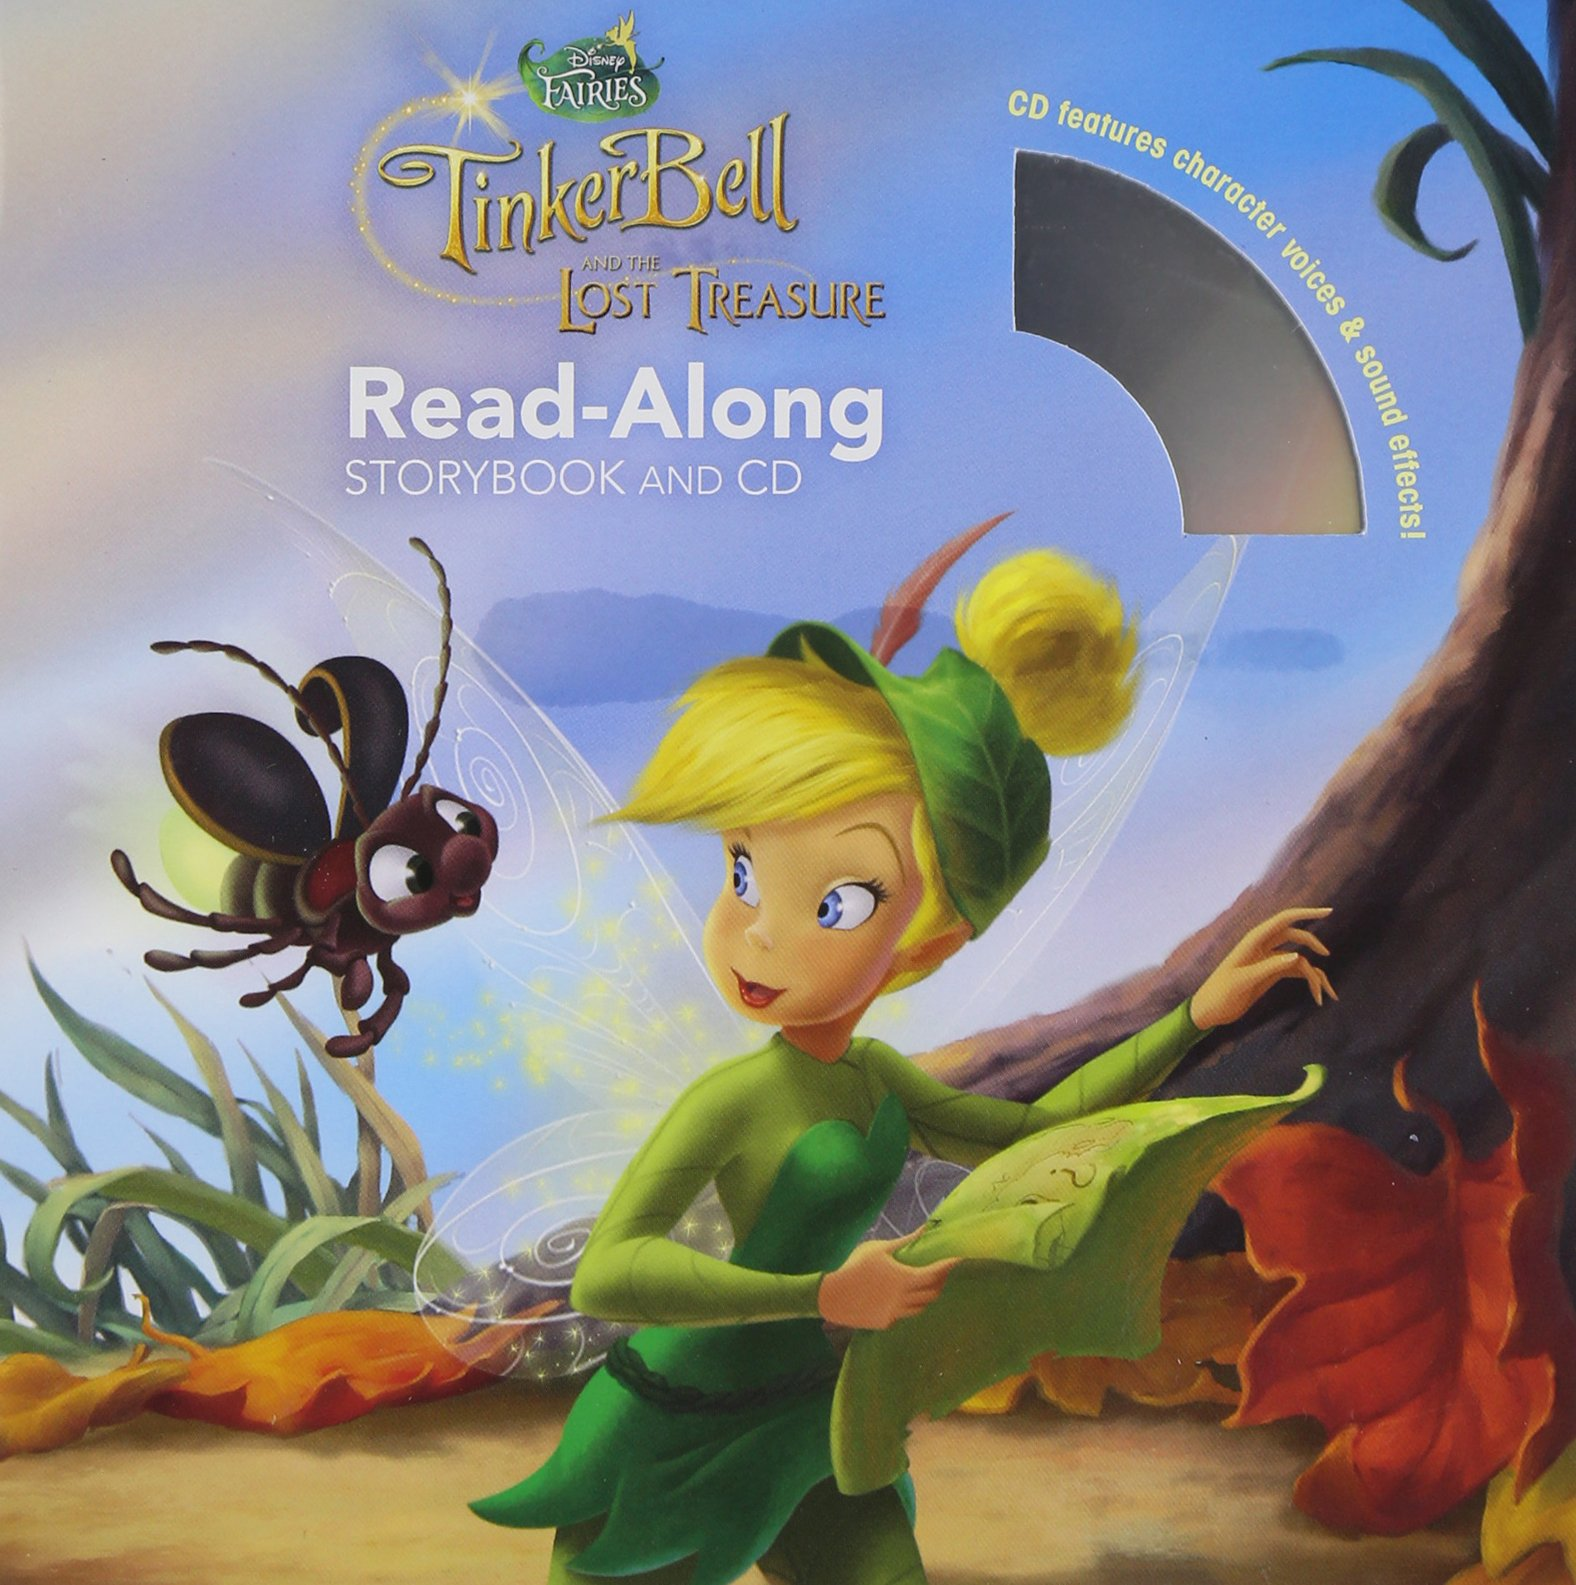 Tinker Bell and the Lost Treasure Read-Along Storybook and CD by Disney Press